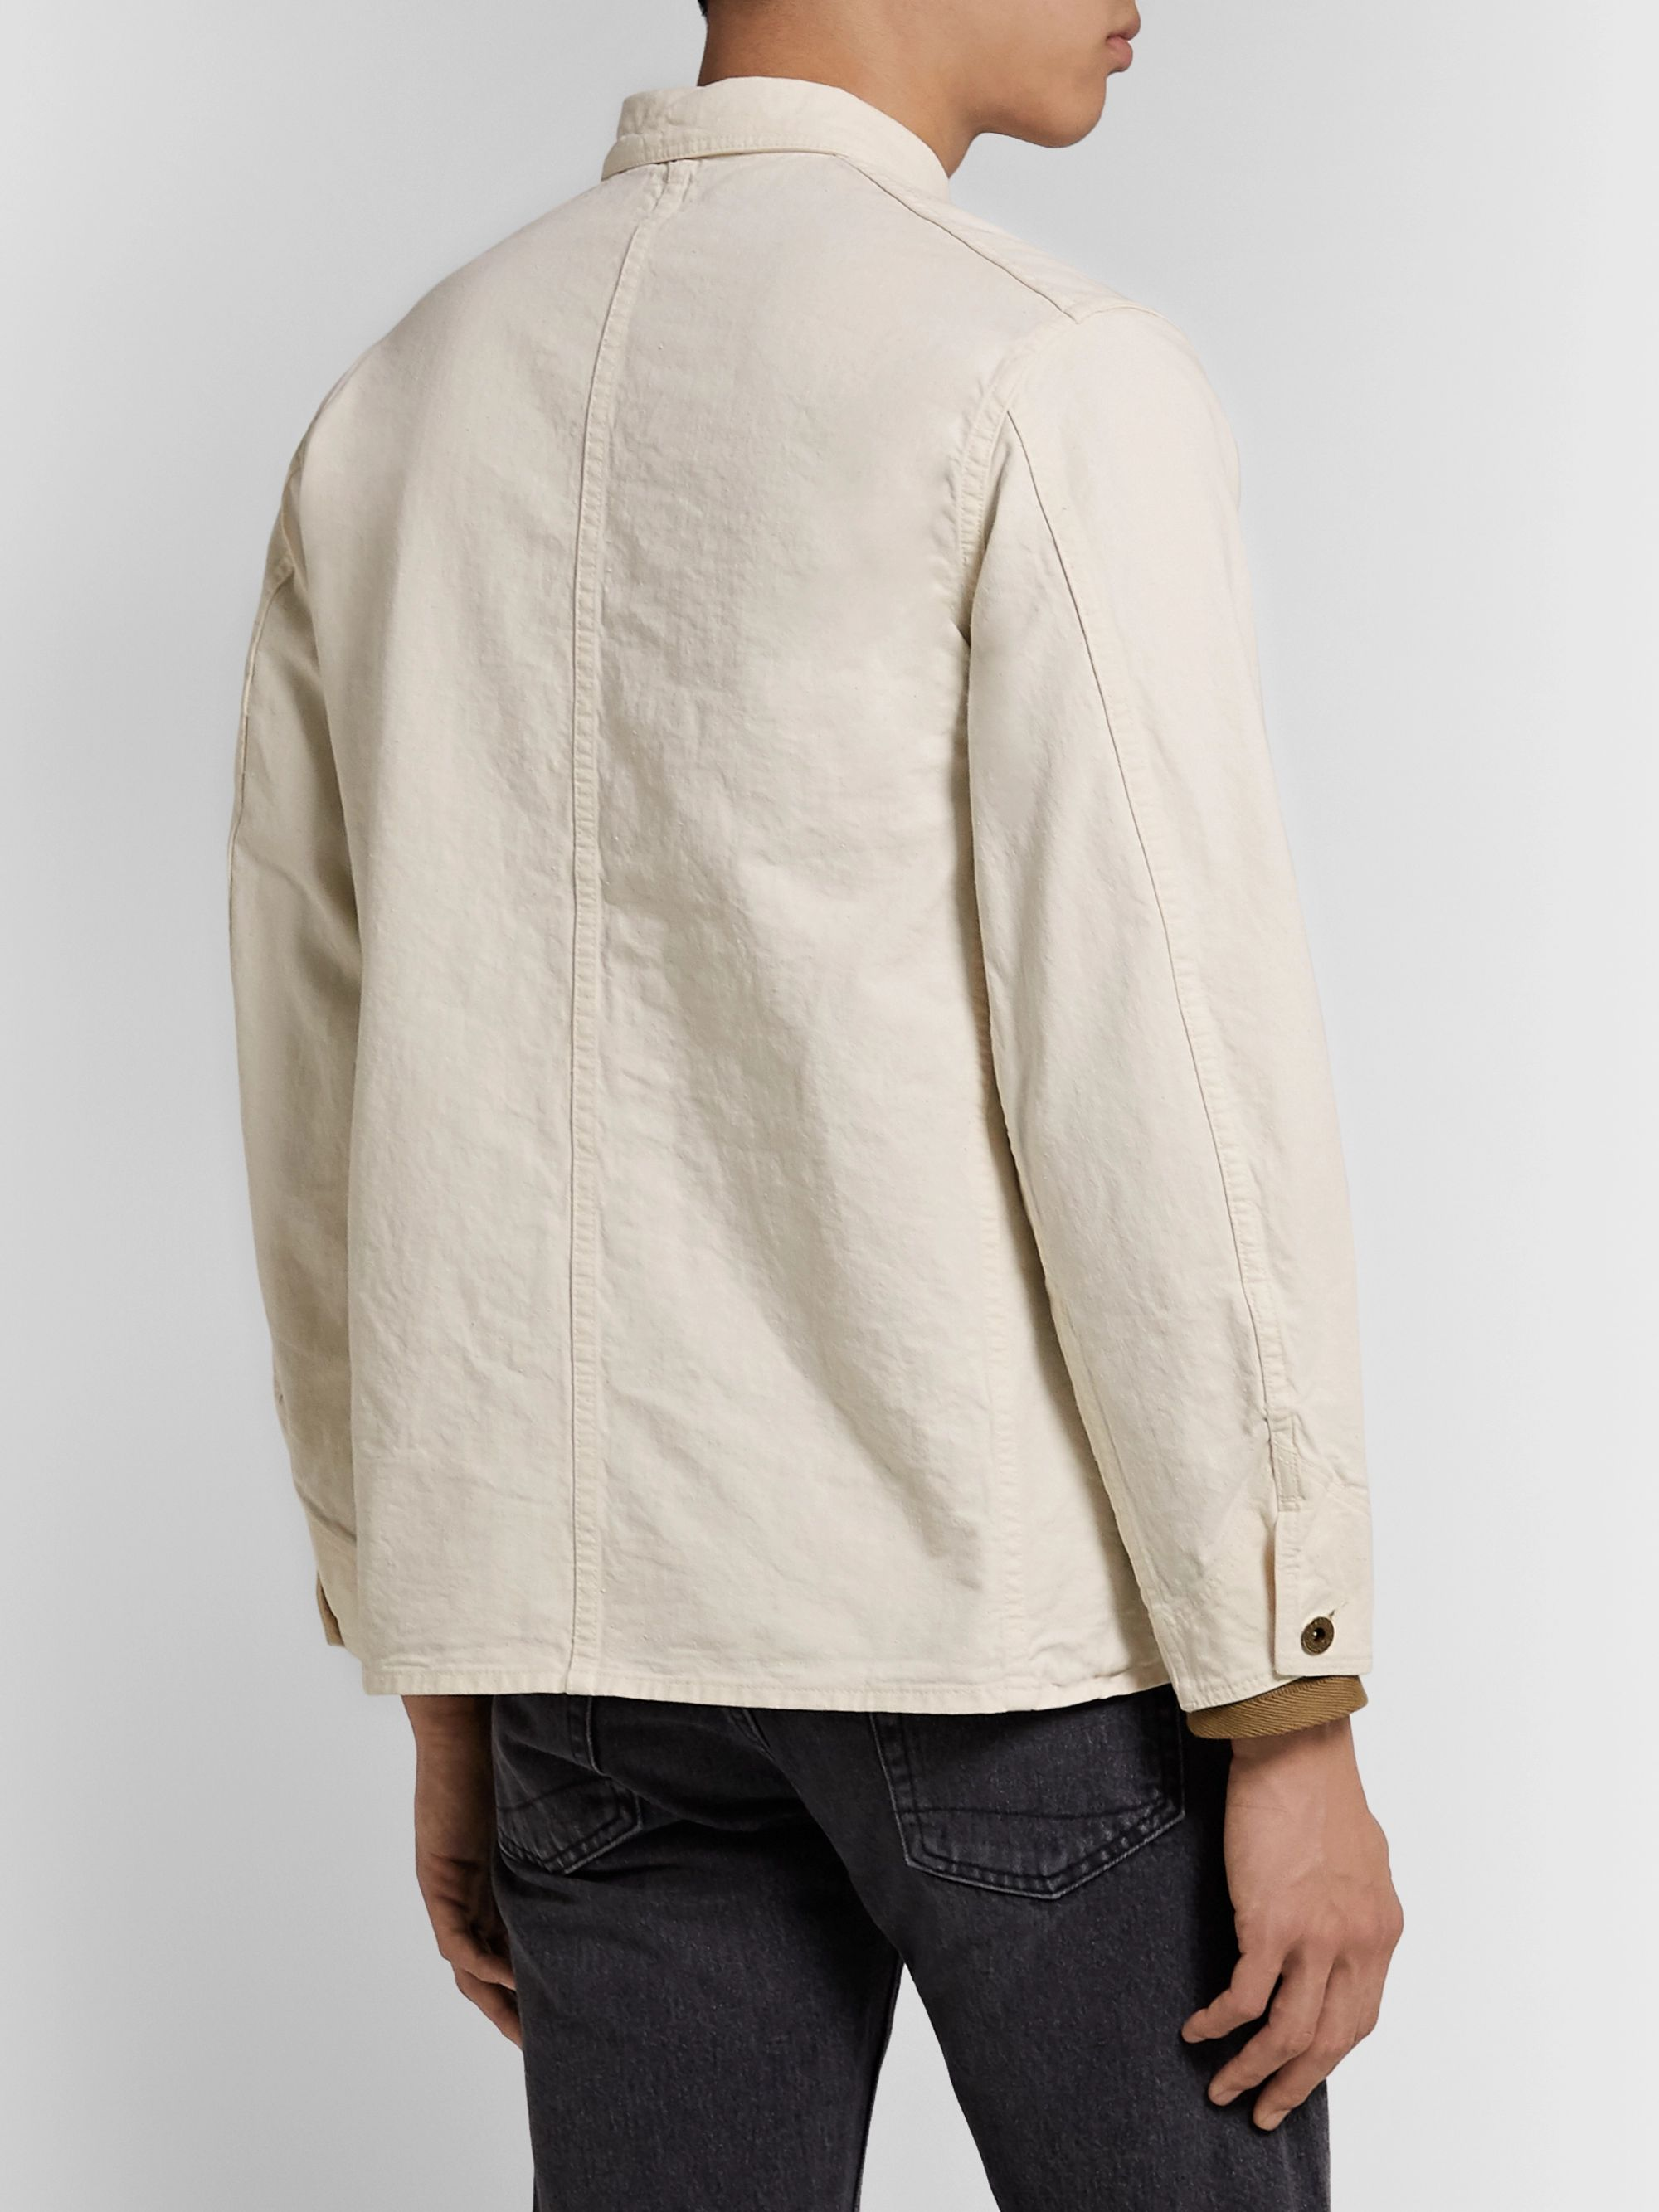 OrSlow Cotton-Twill Chore Jacket